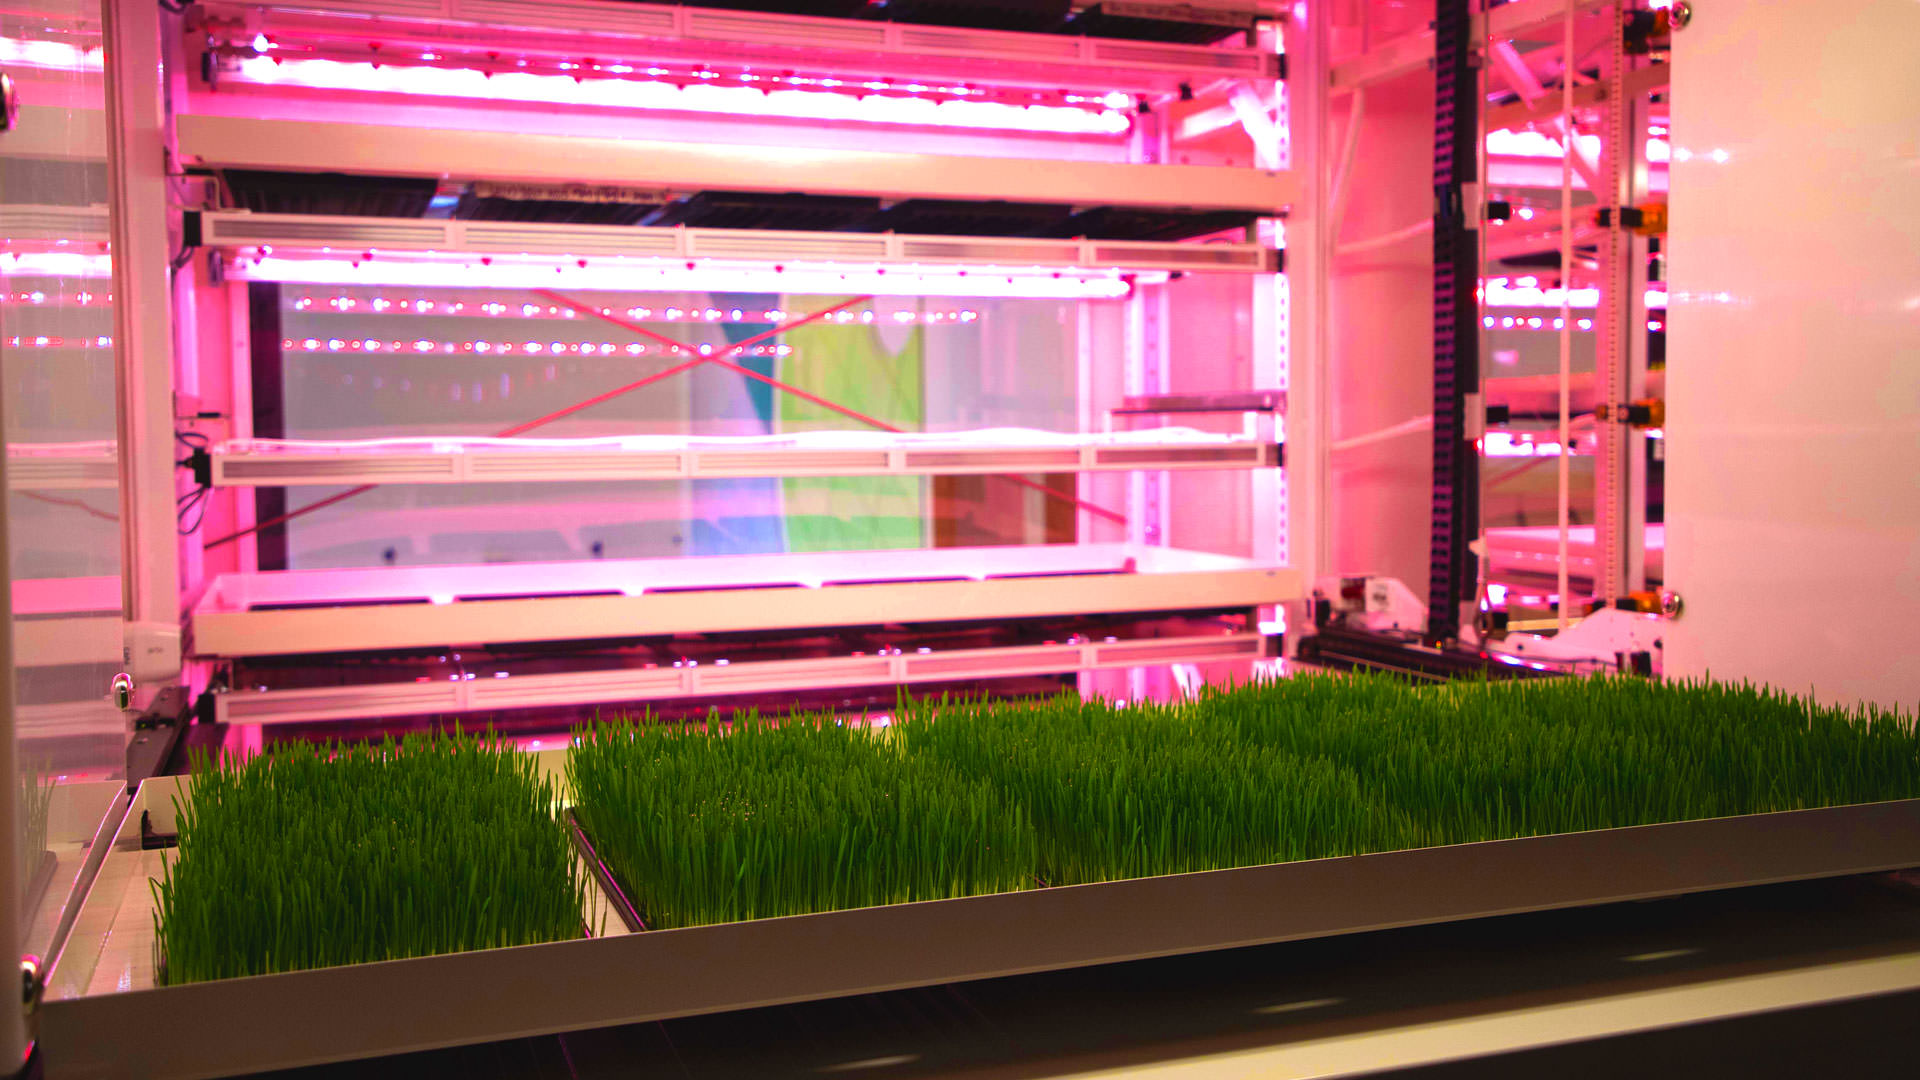 Gallery Next-Generation Vertical Farming 2